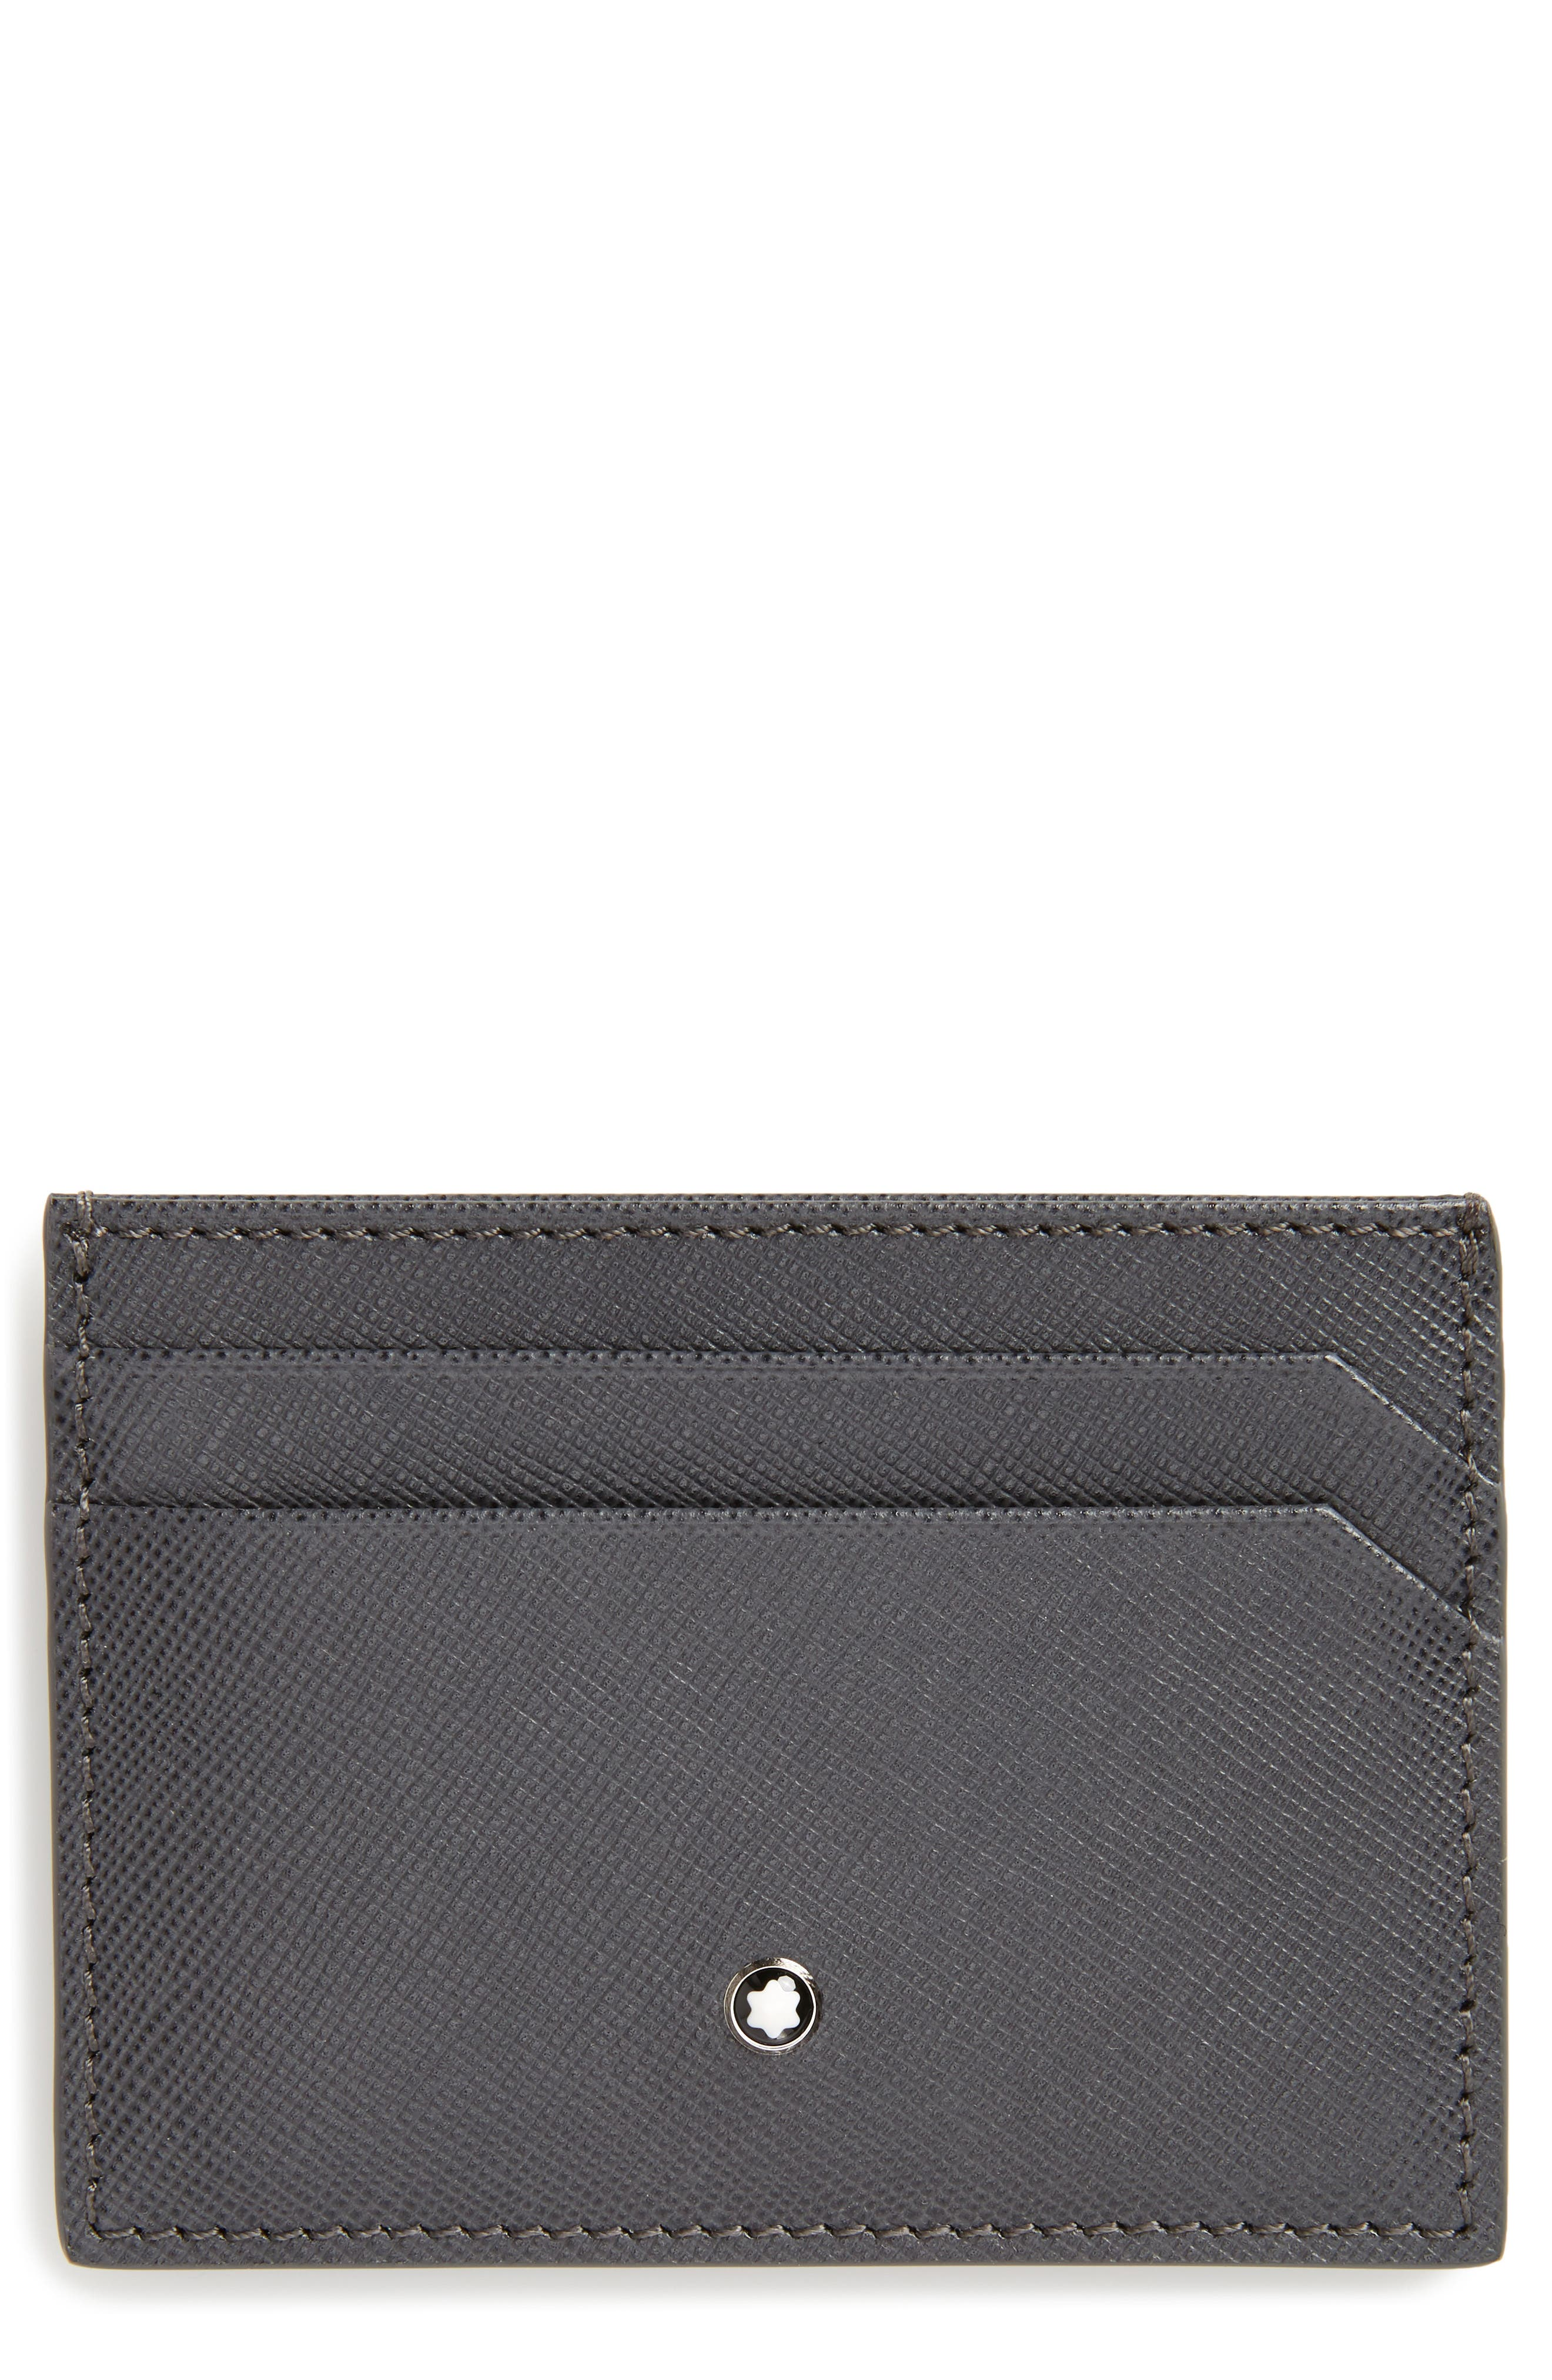 MONTBLANC Sartorial Leather Card Case, Main, color, DARK GREY